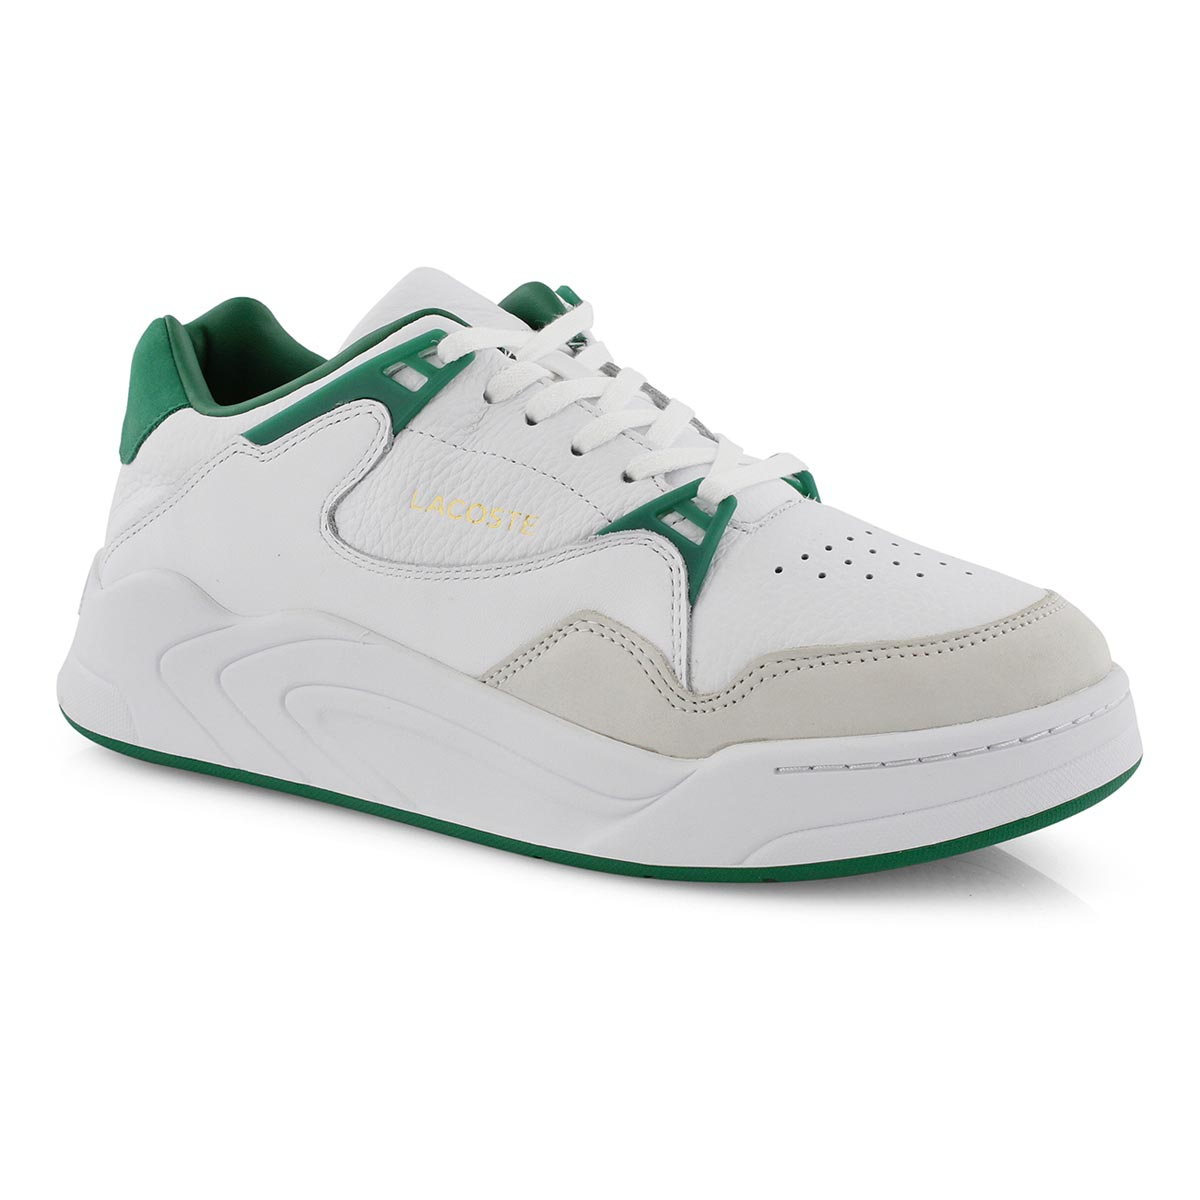 Mns Court Slam 319 2 wht/grn fashion snk